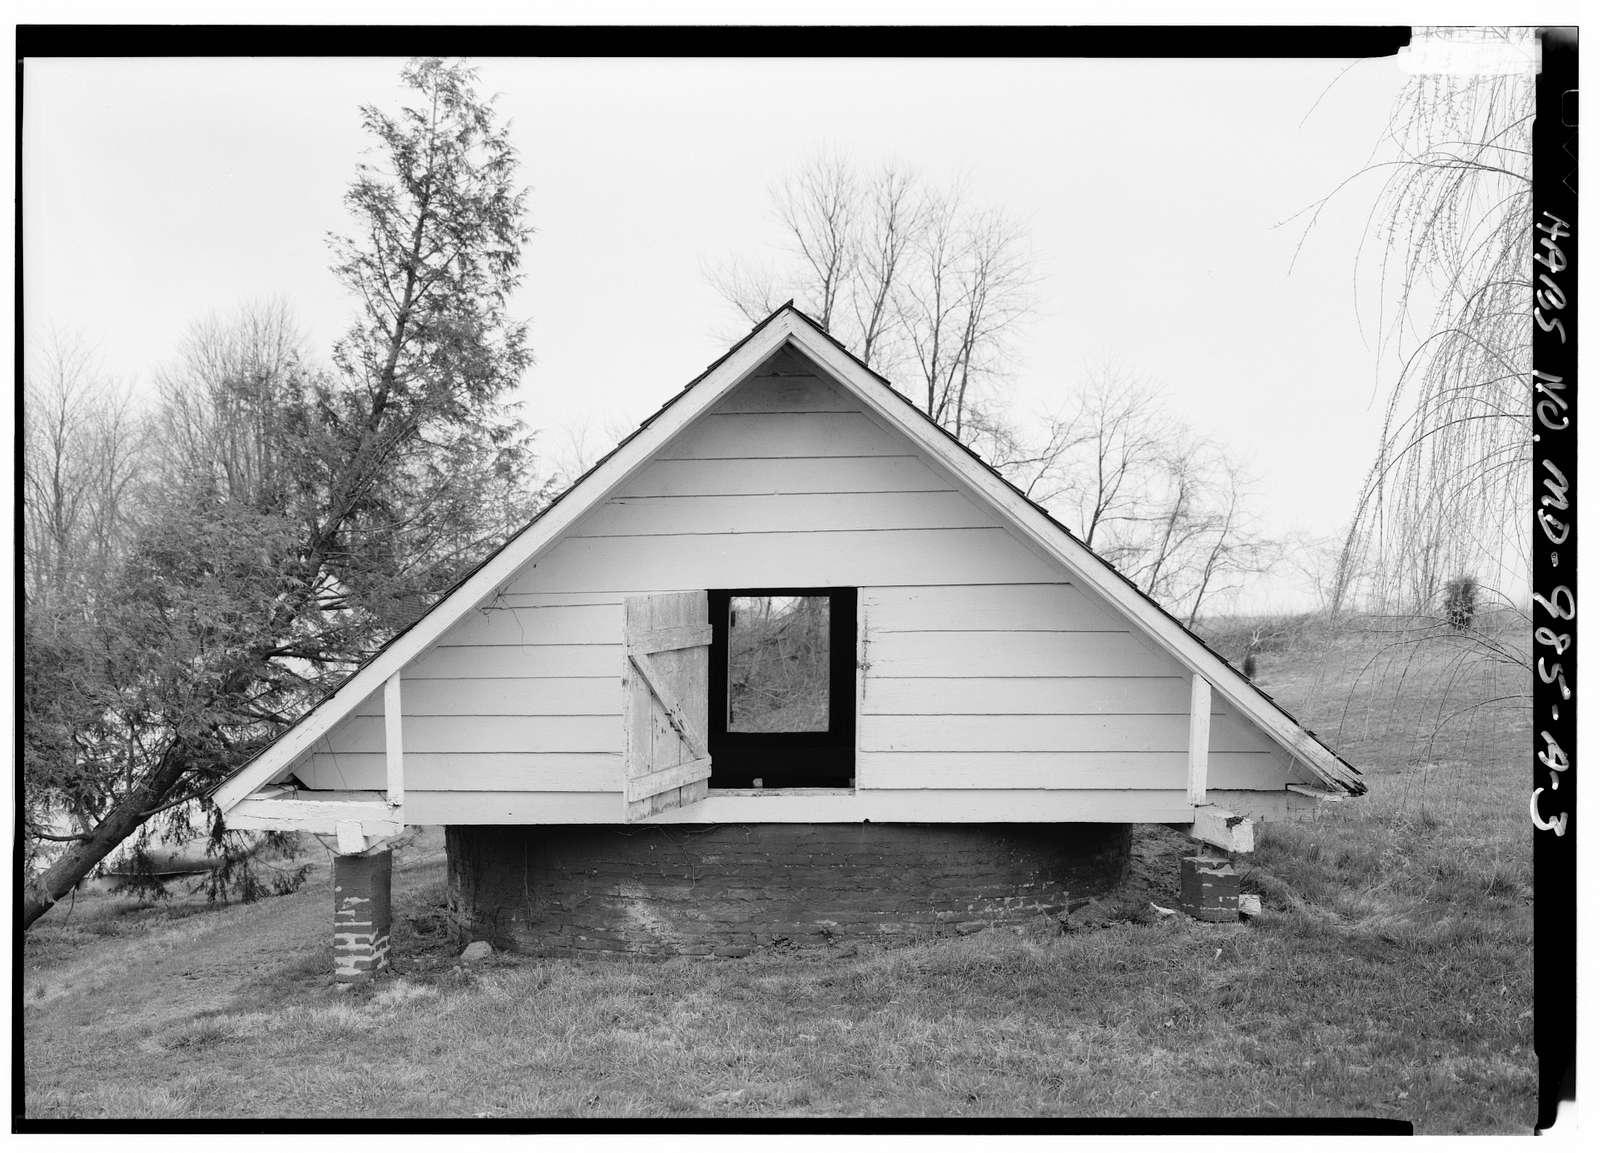 The Cottage, Ice House, Upper Marlboro, Prince George's County, MD